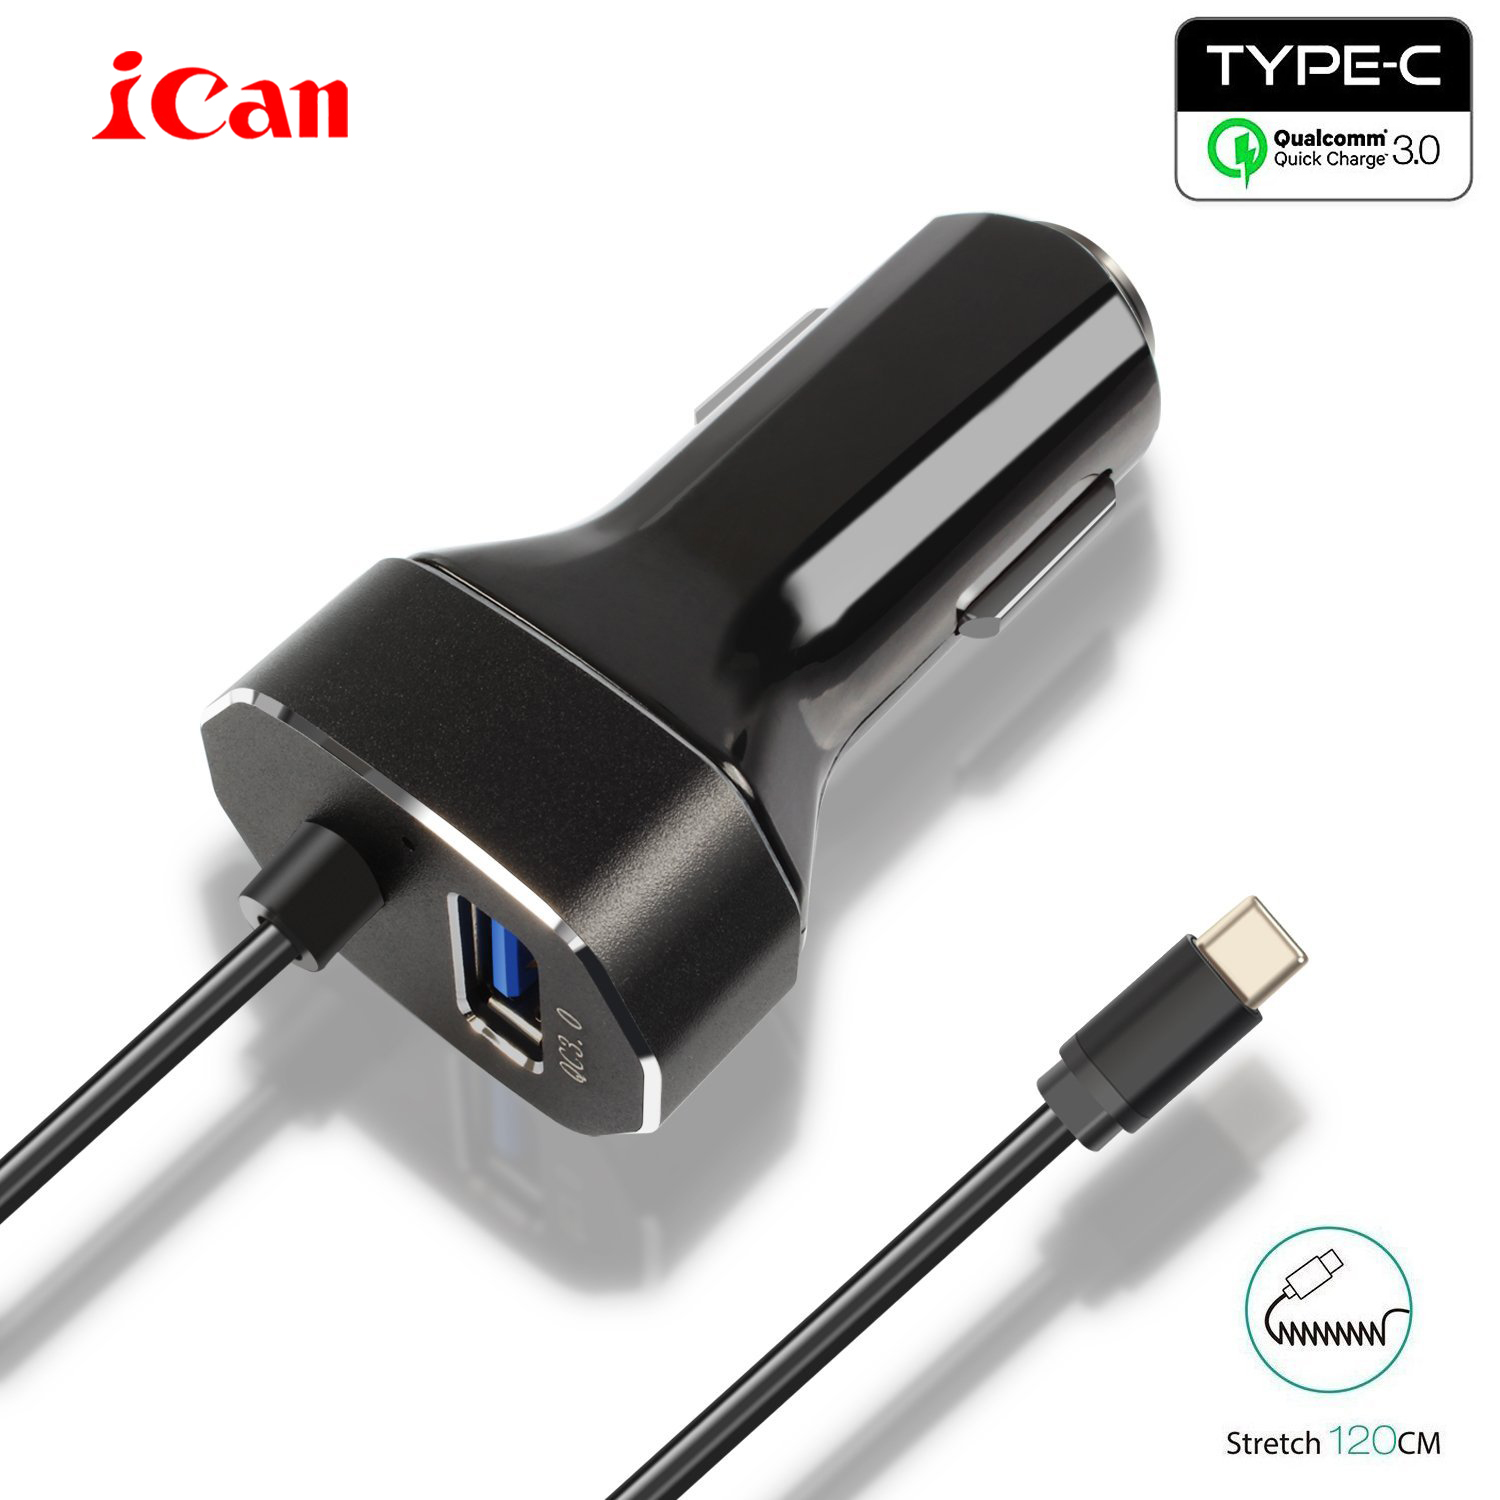 Ican car-charger 30W 2 Ports USB Type C Car Charger USB QC 3.0 Type-C USB Adapter Charging Cable for Samsung iPhone Galaxy S7 S6